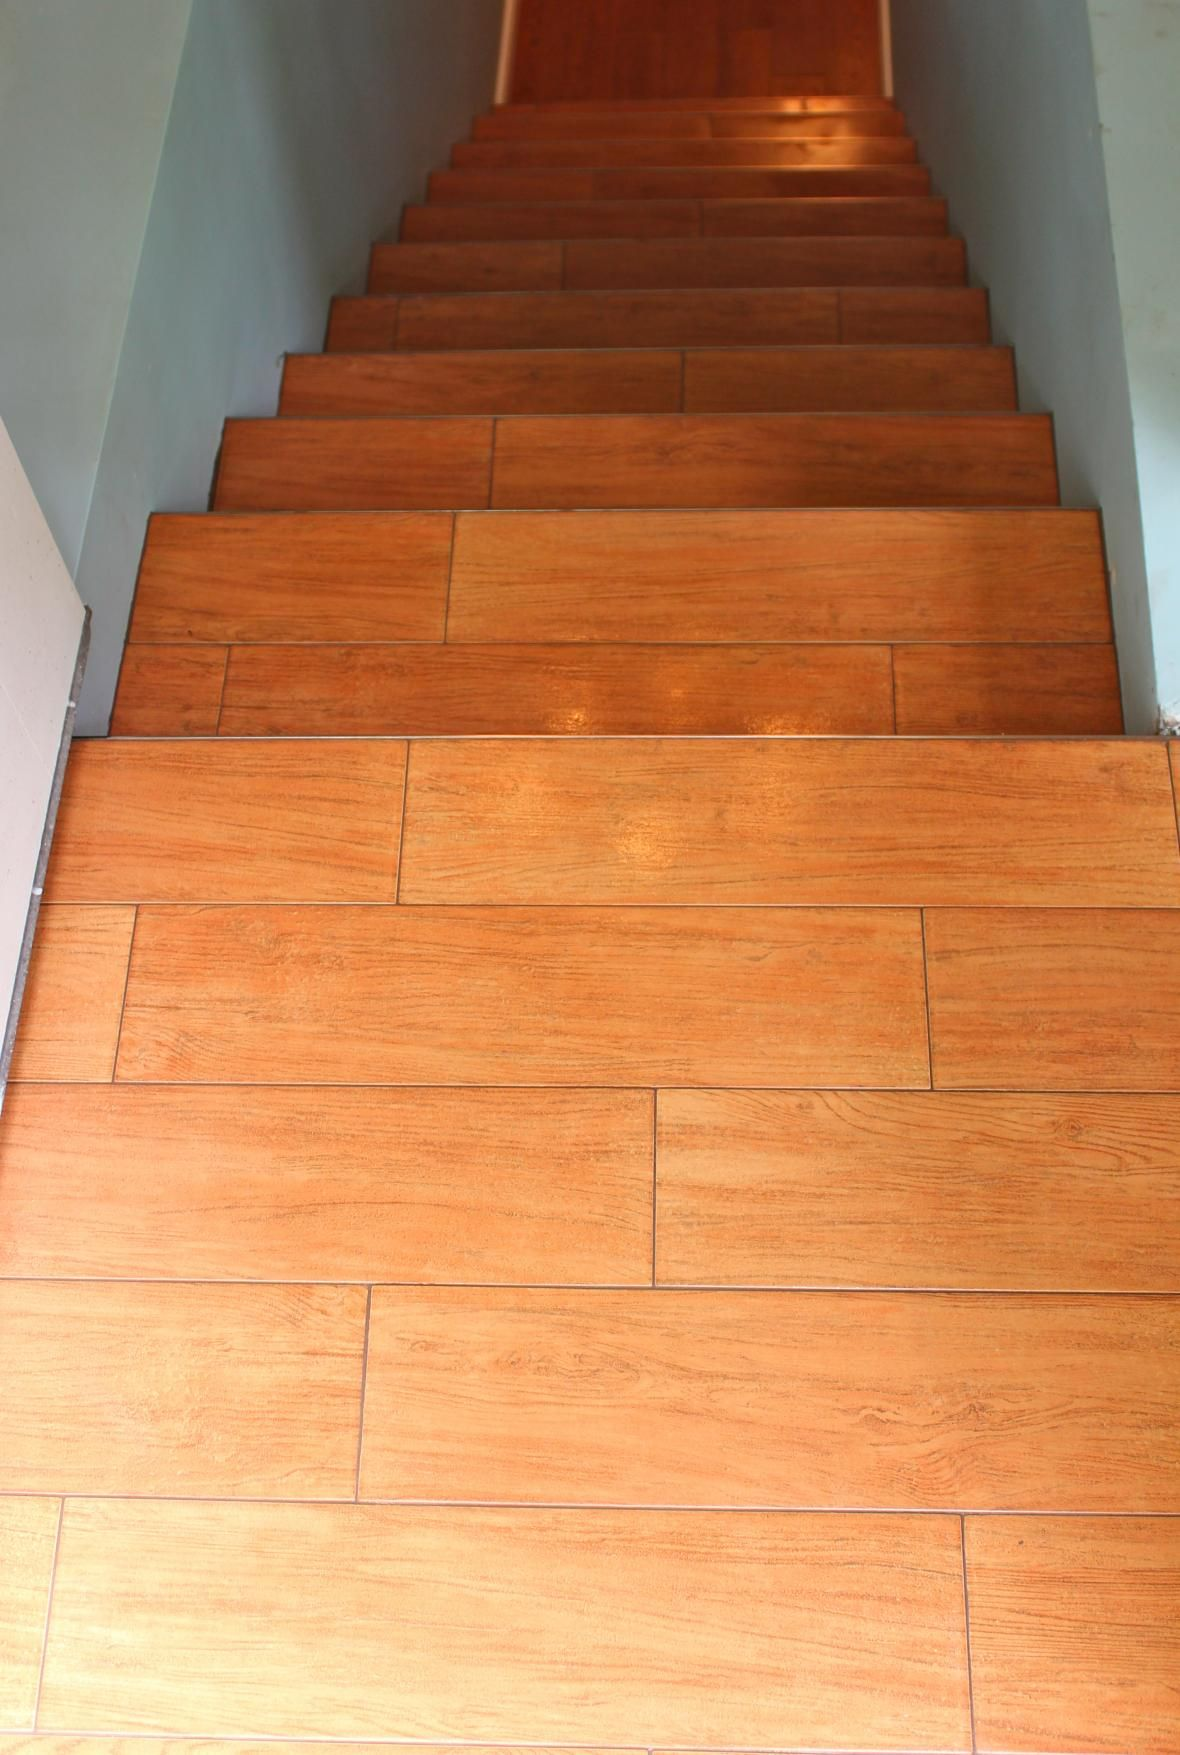 Wood like tile stairs the home pinterest tile stairs woods wood like tile stairs dailygadgetfo Gallery